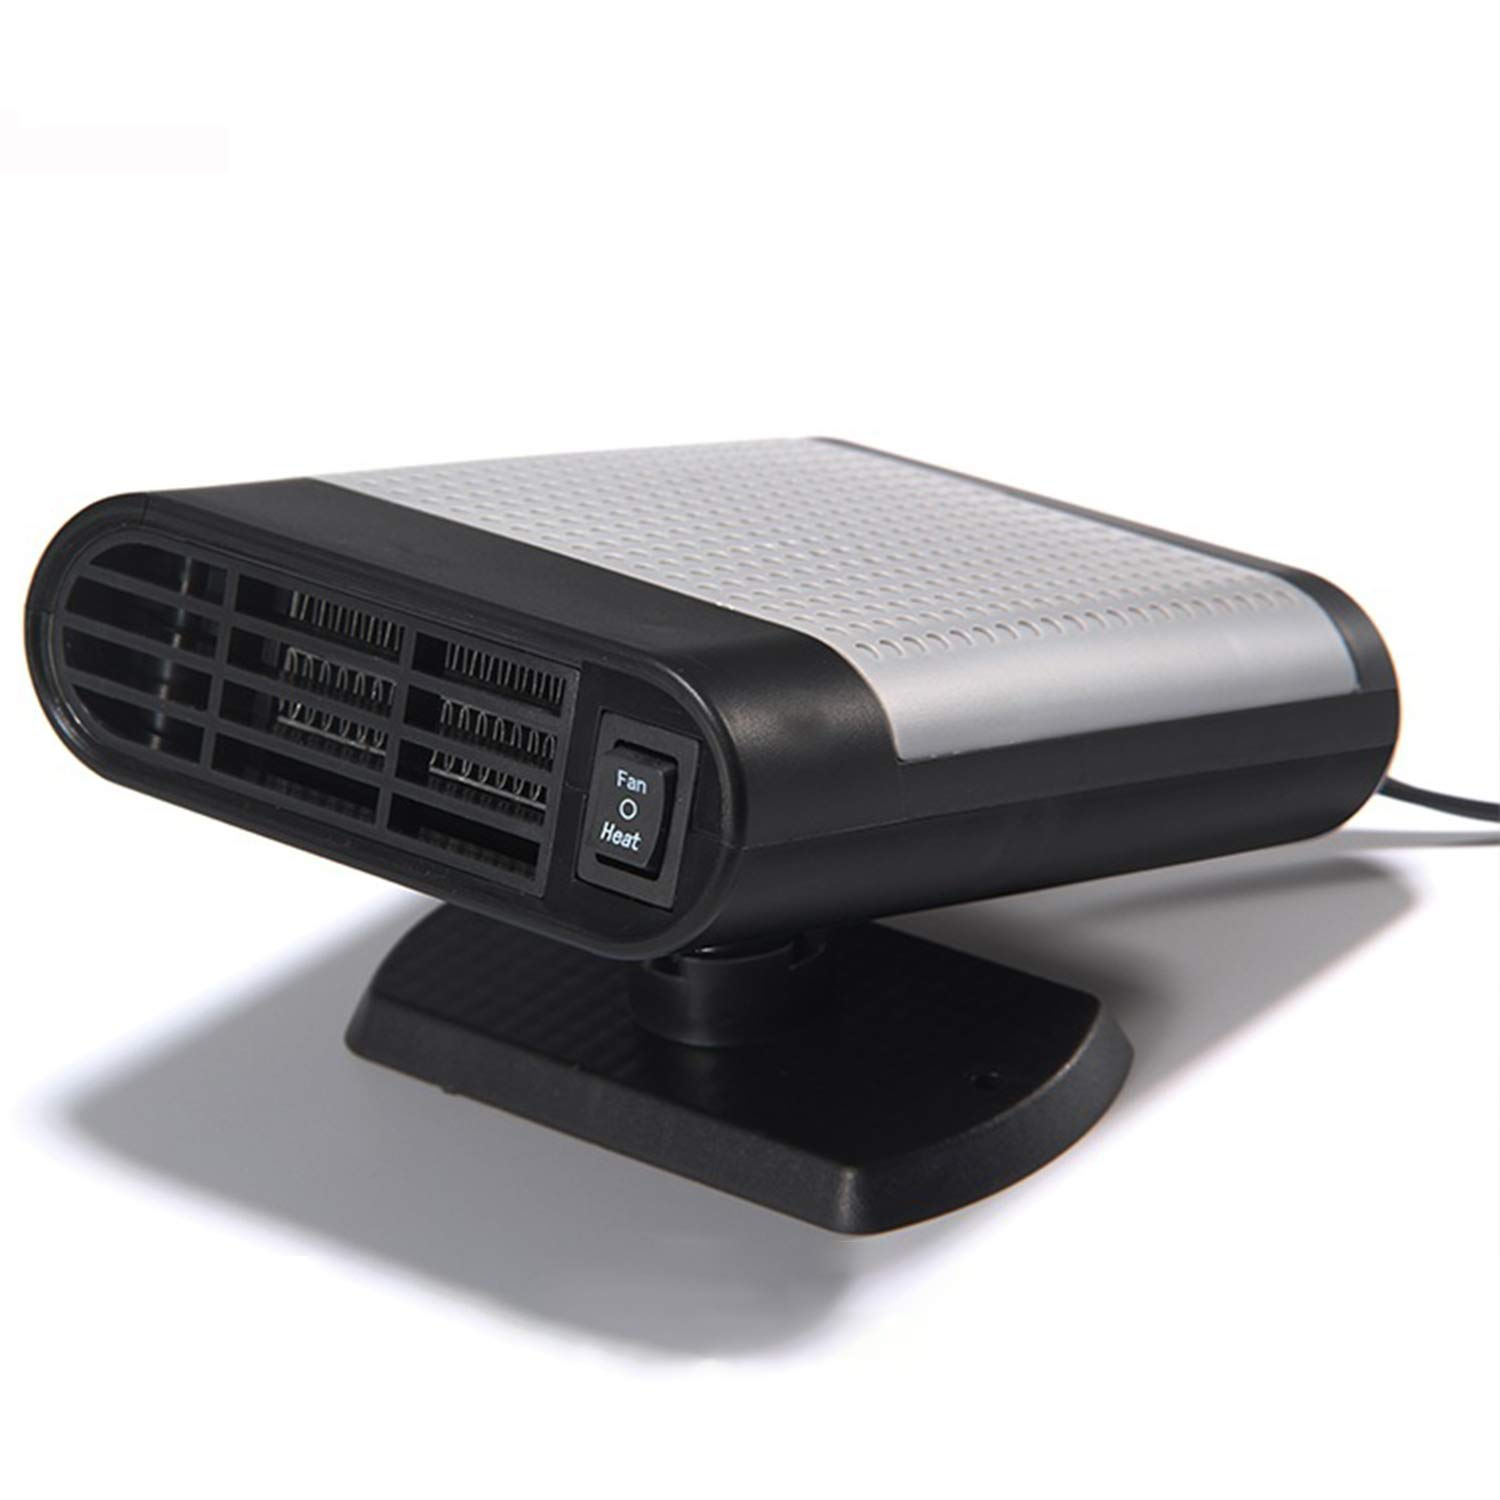 Portable Car Heater 12V Car Heater Heater Car Interior Thermoelectric Heating Air Purification Defrost Defogging